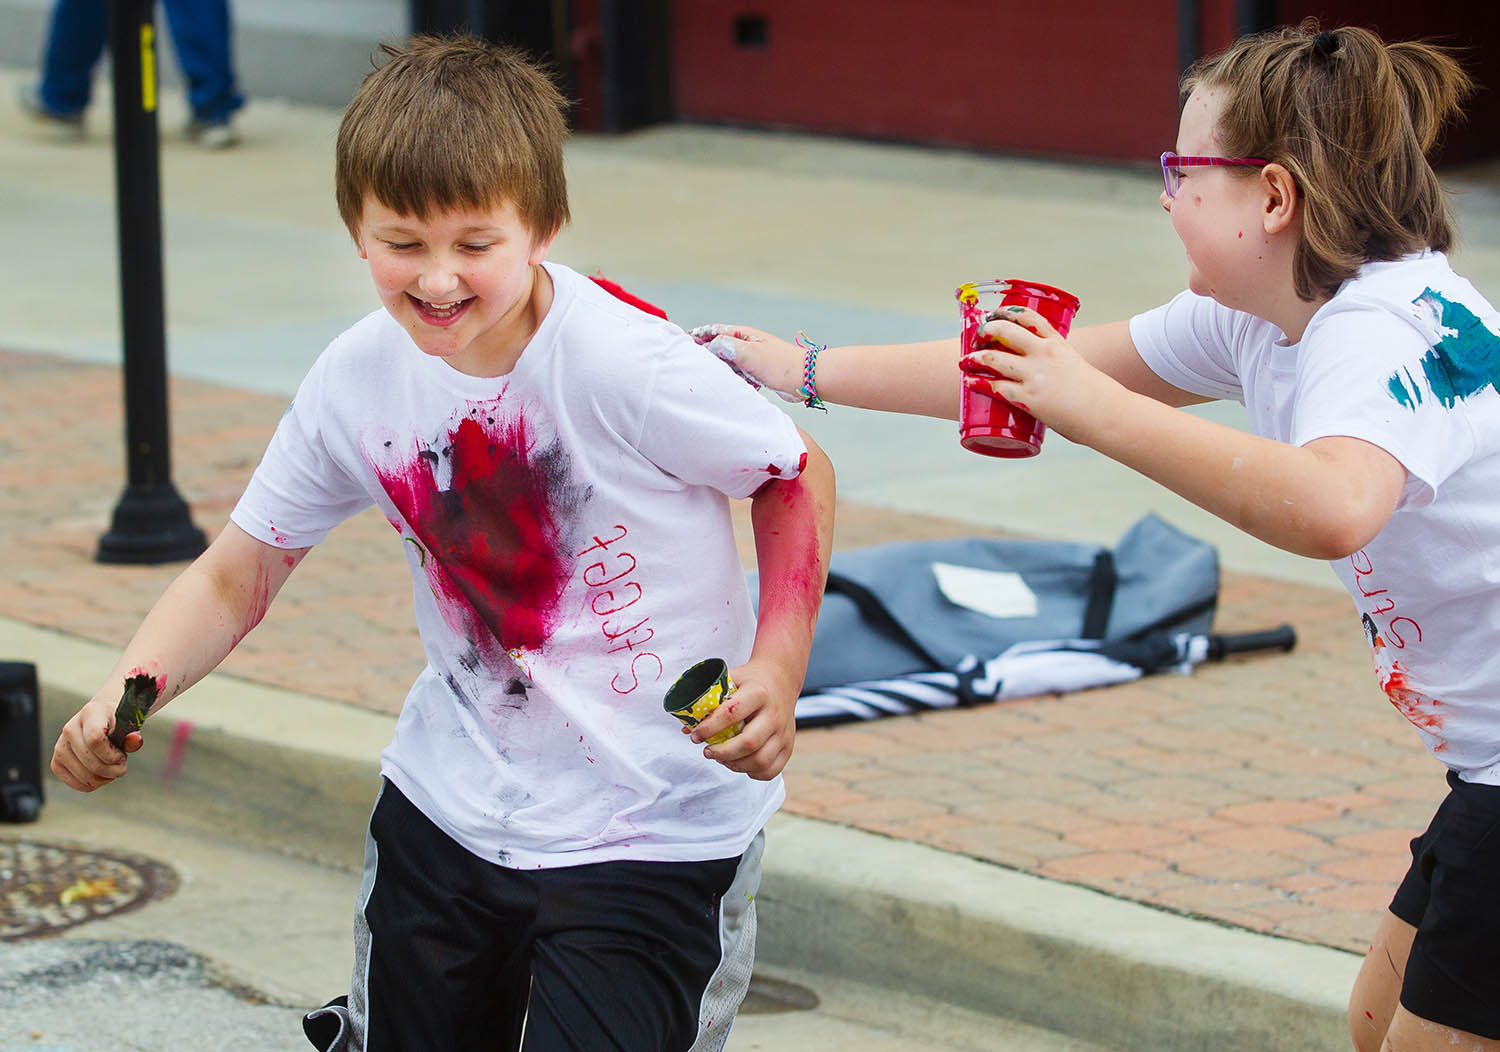 Liam Steinkruger runs from Reagan Burlison as she tries to swipe him with her red paint brush during the Springfield Art Association's 2019 Paint the Street event in downtown Springfield, Ill., Saturday, June 22, 2019. [Ted Schurter/The State Journal-Register]